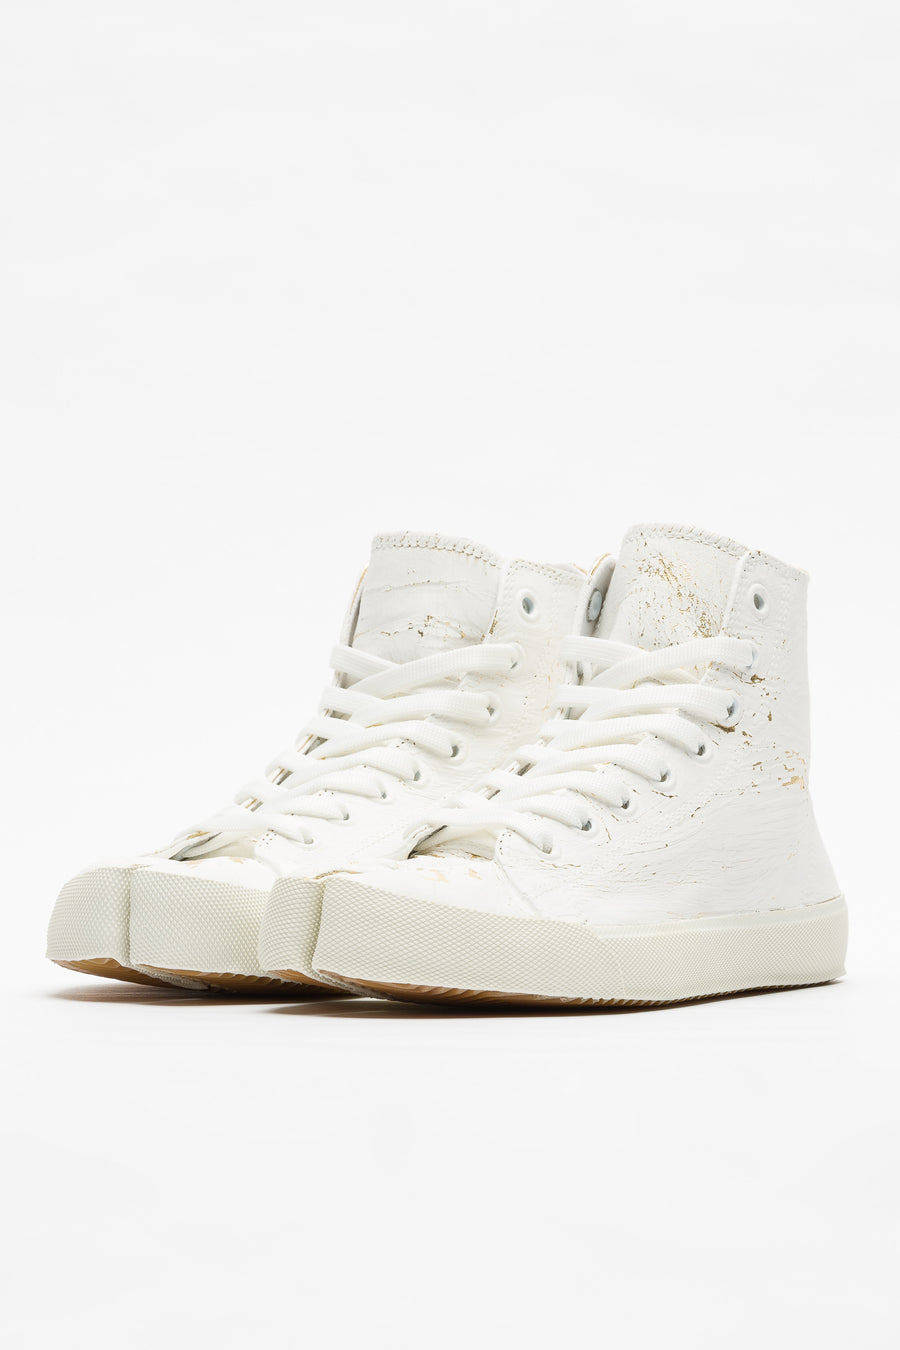 Maison Margiela Mid Top Painted Sneaker in White/Gold - Notre